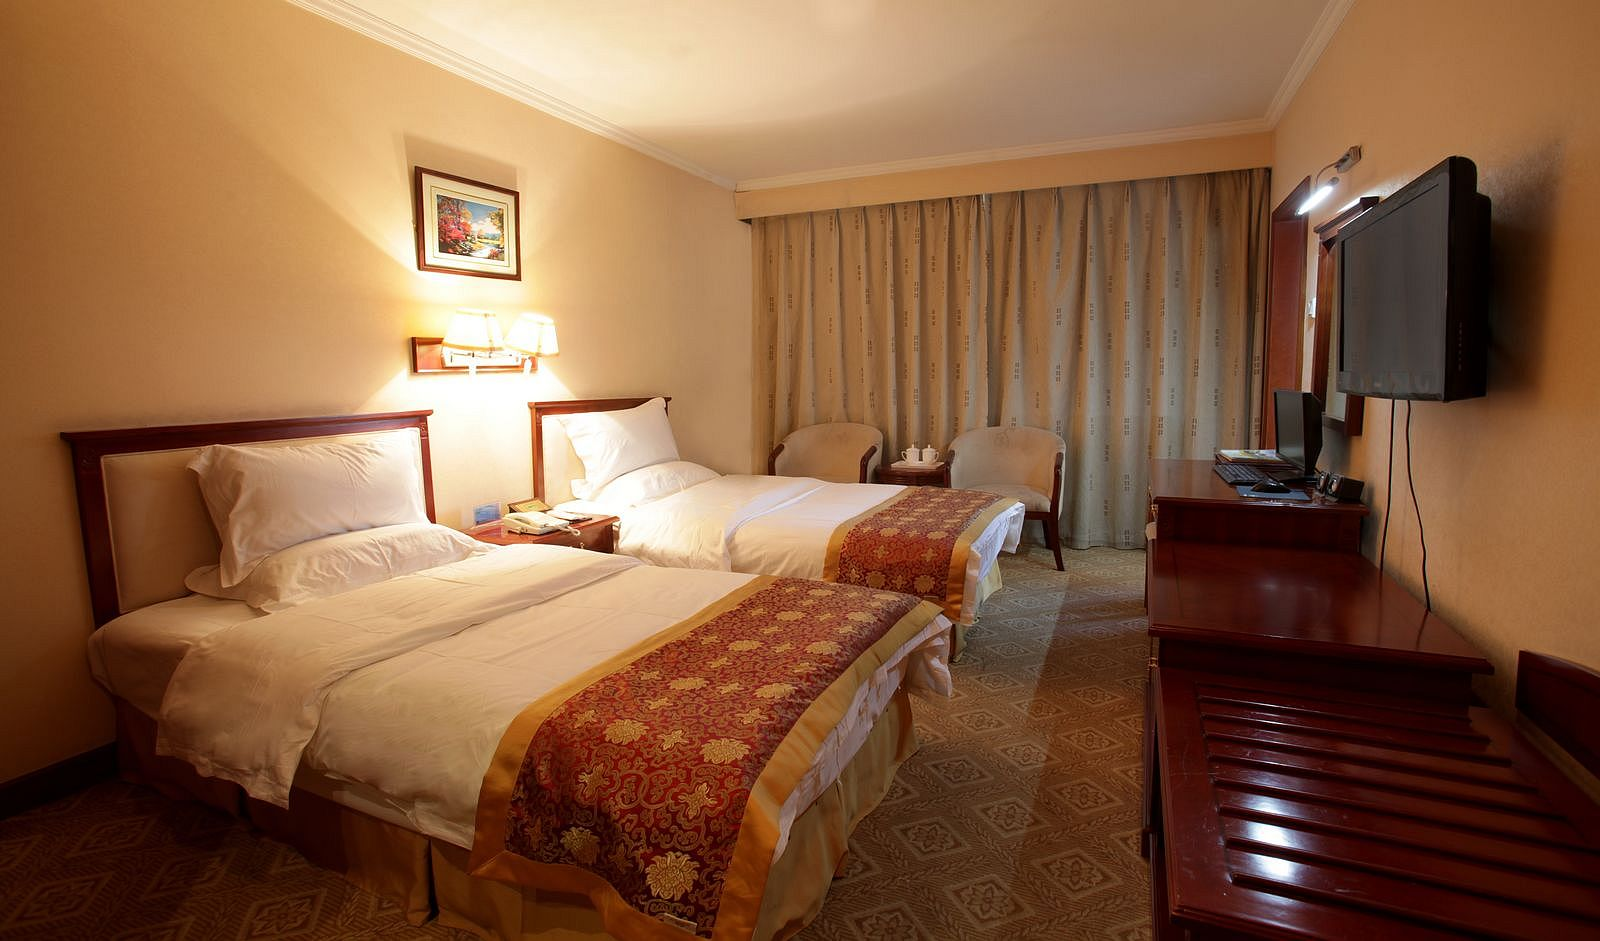 http://www.4fang.cc/pictures/TrustSoft/Hotel/2014428161524546.jpg